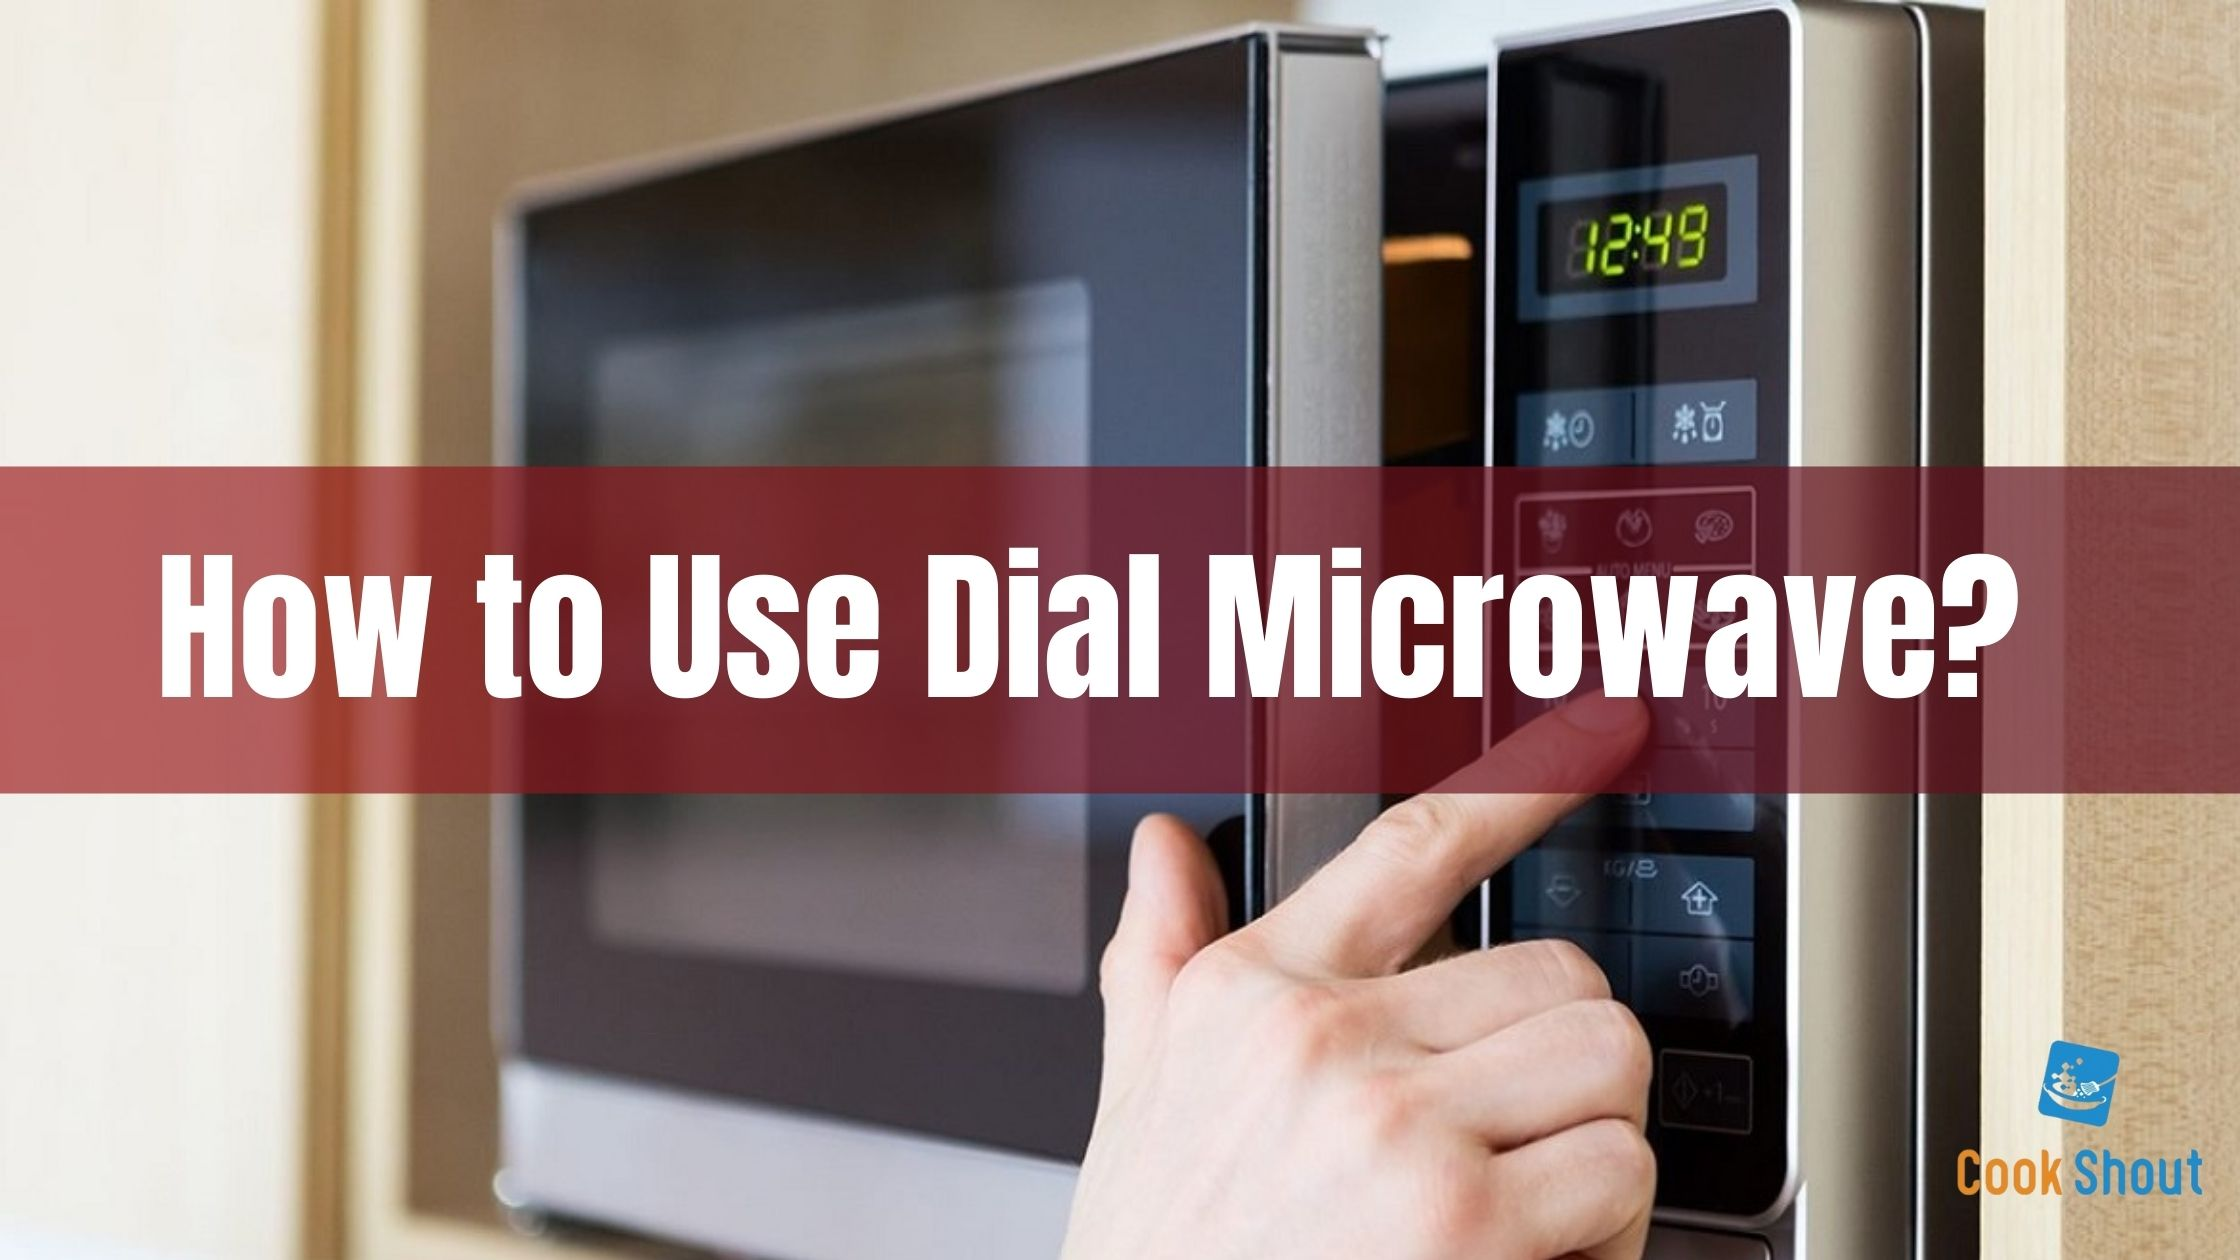 How to Use Dial Microwave